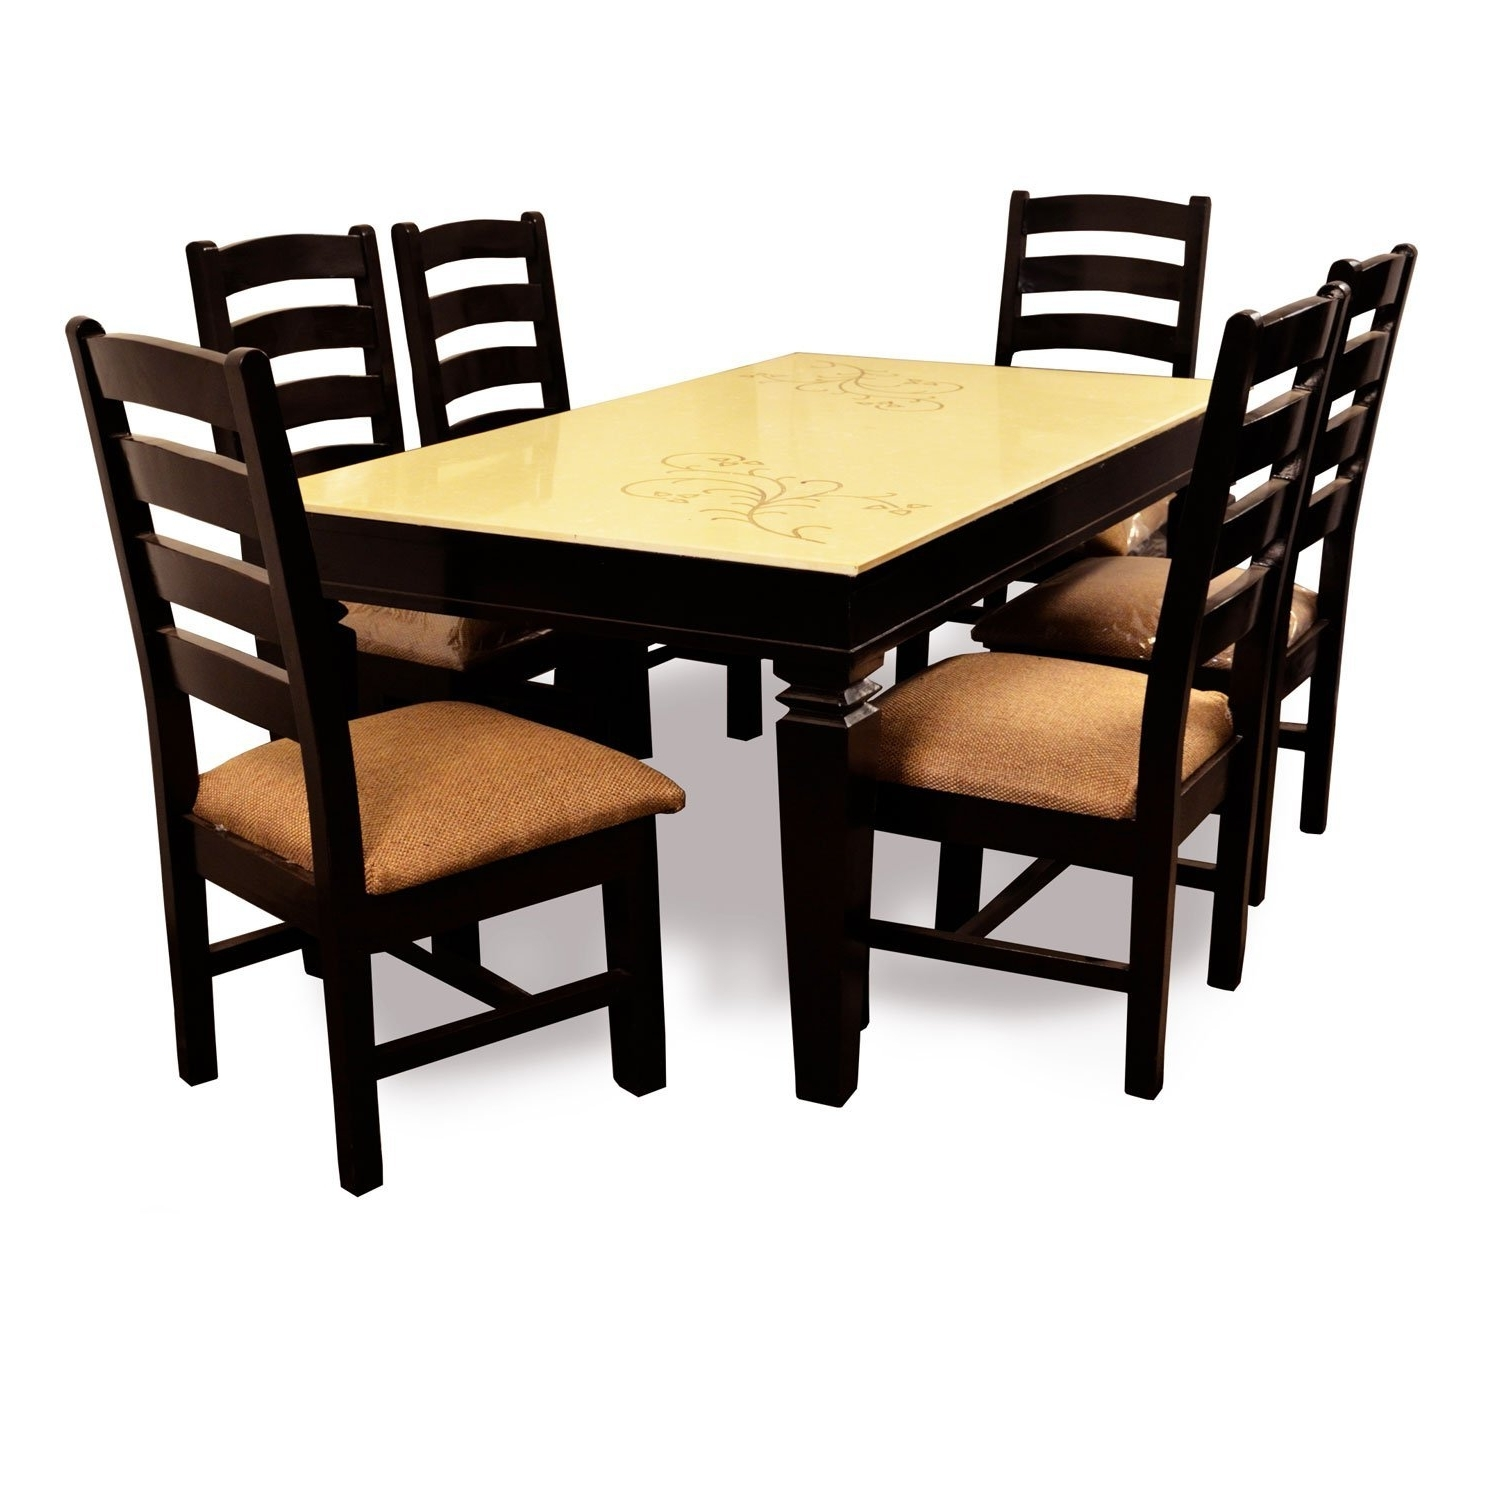 Preferred 6 Seater Dining Table, Six Seater Dining Table, Stylish Dining Table Within Six Seater Dining Tables (View 2 of 25)